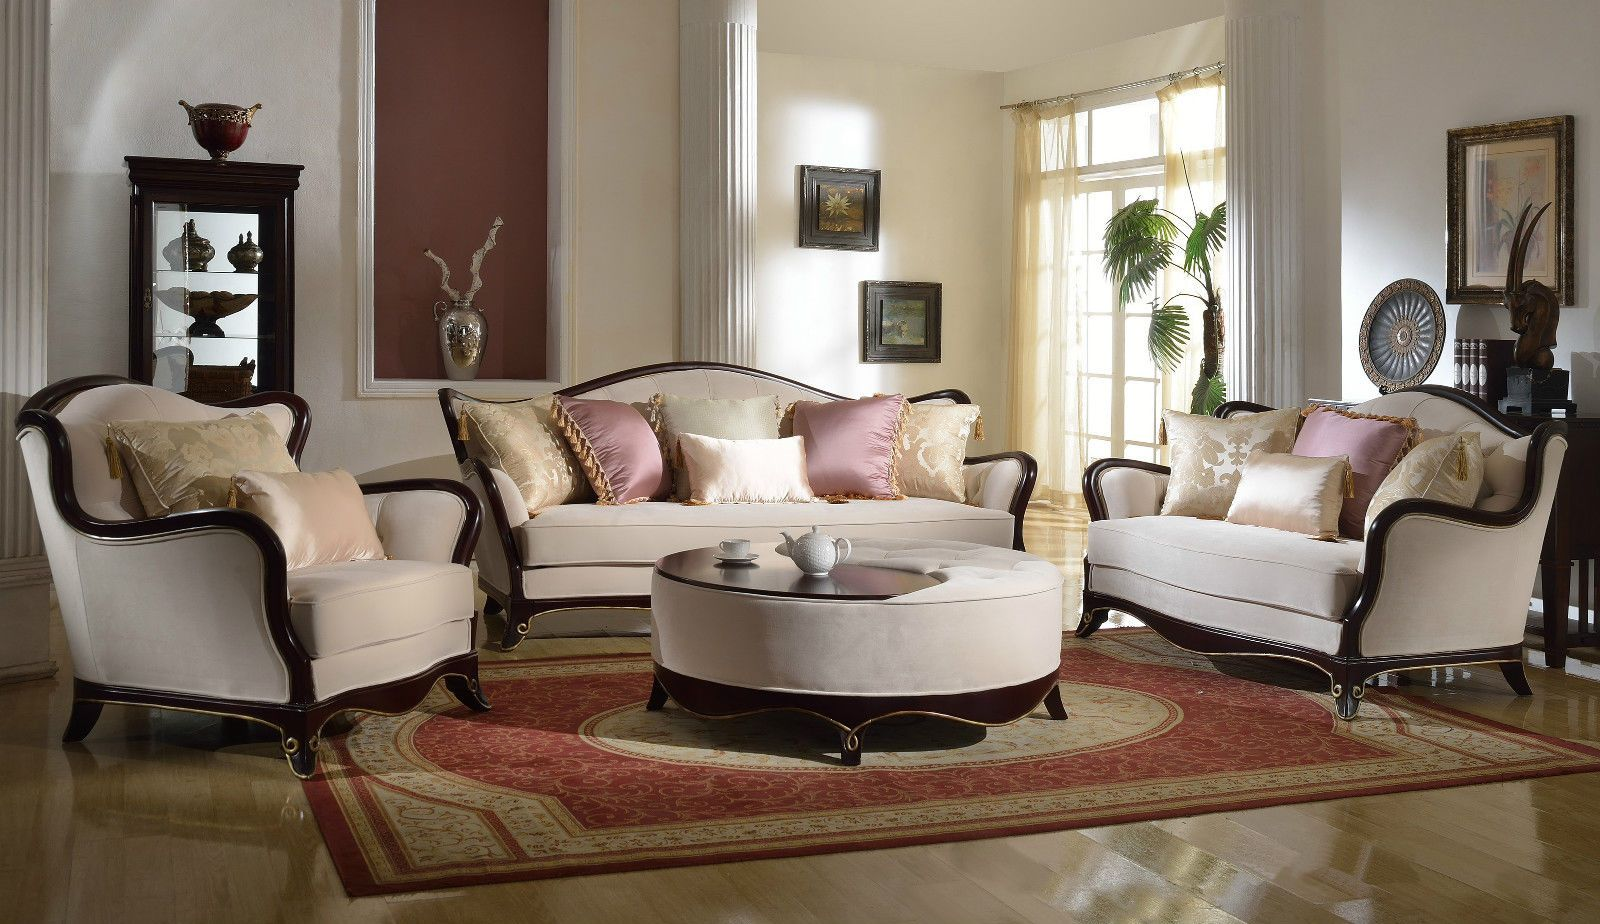 French Provincial Formal Living Room Furniture Set Sofa ...